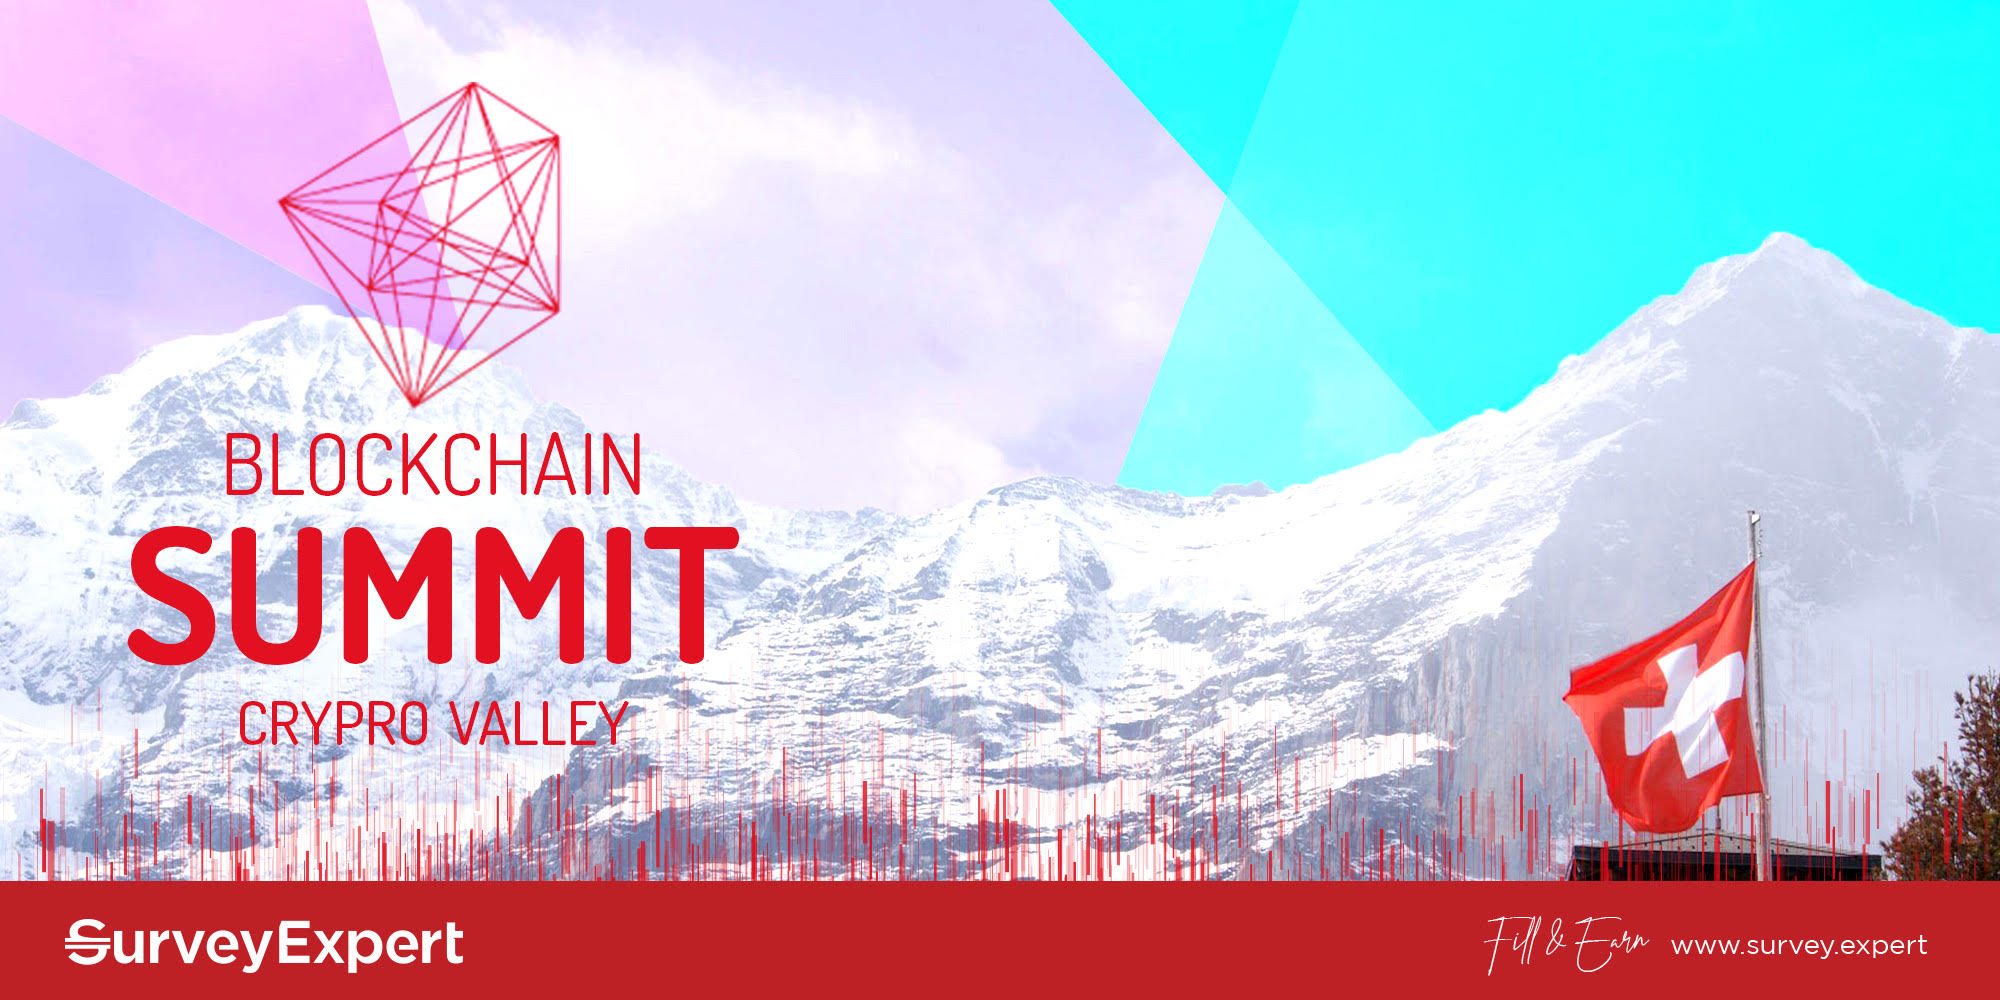 Survey Expert was at Blockchain Summit Crypto Valley